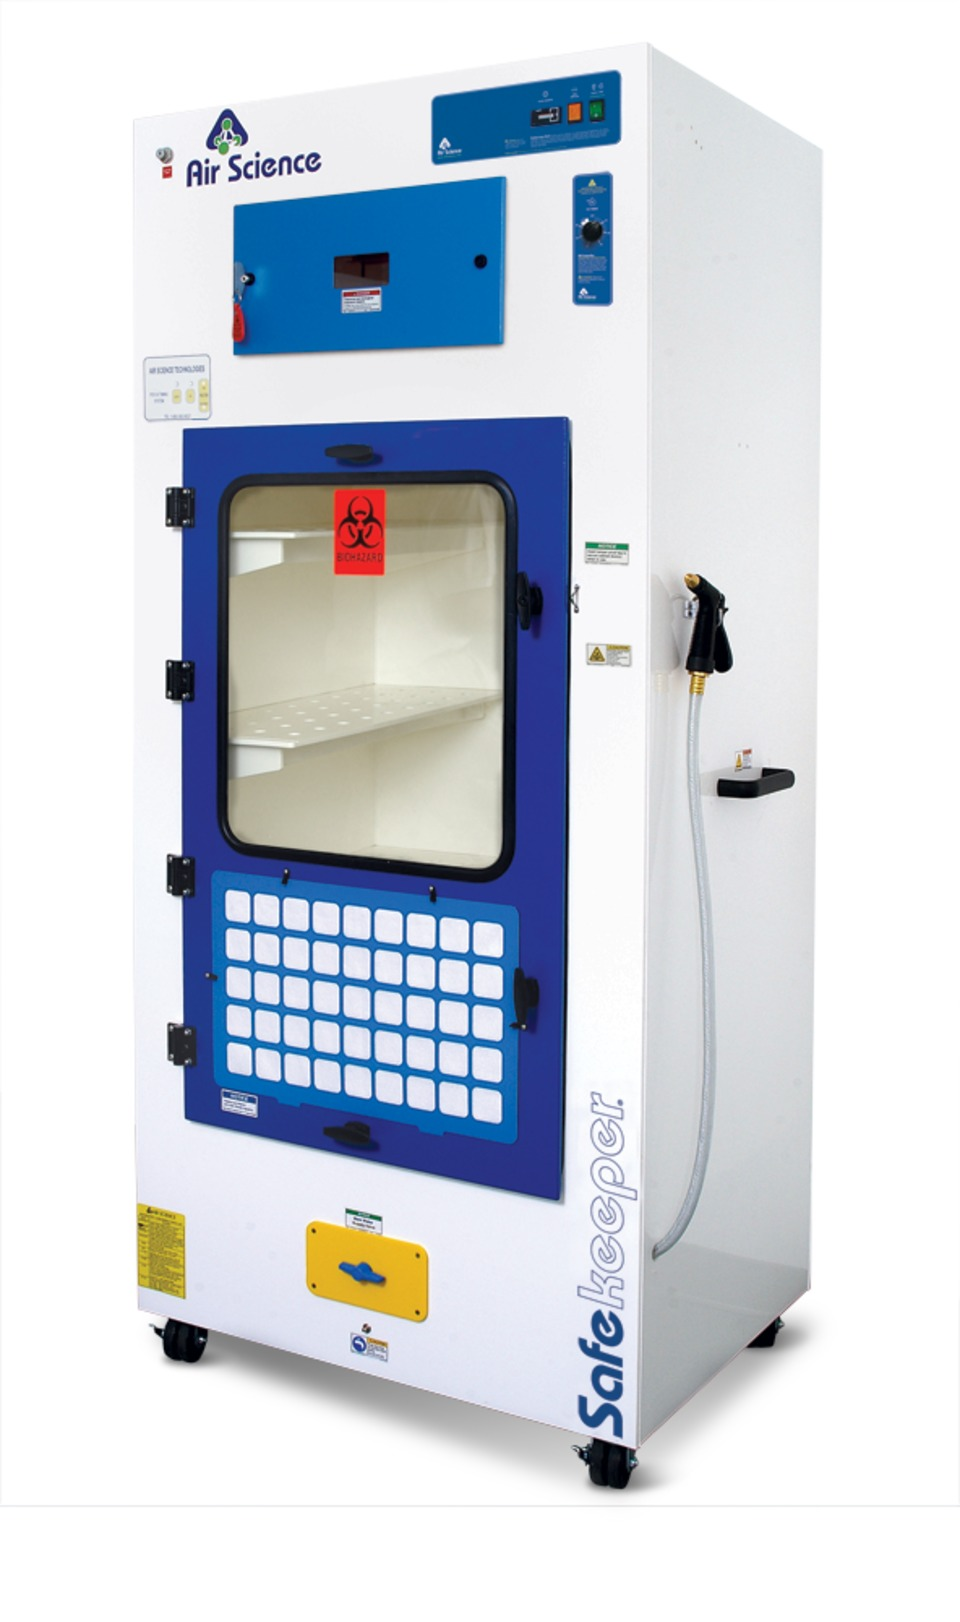 Forensic Drying Cabinet ~ Air science safekeeper forensic evidence drying cabinets